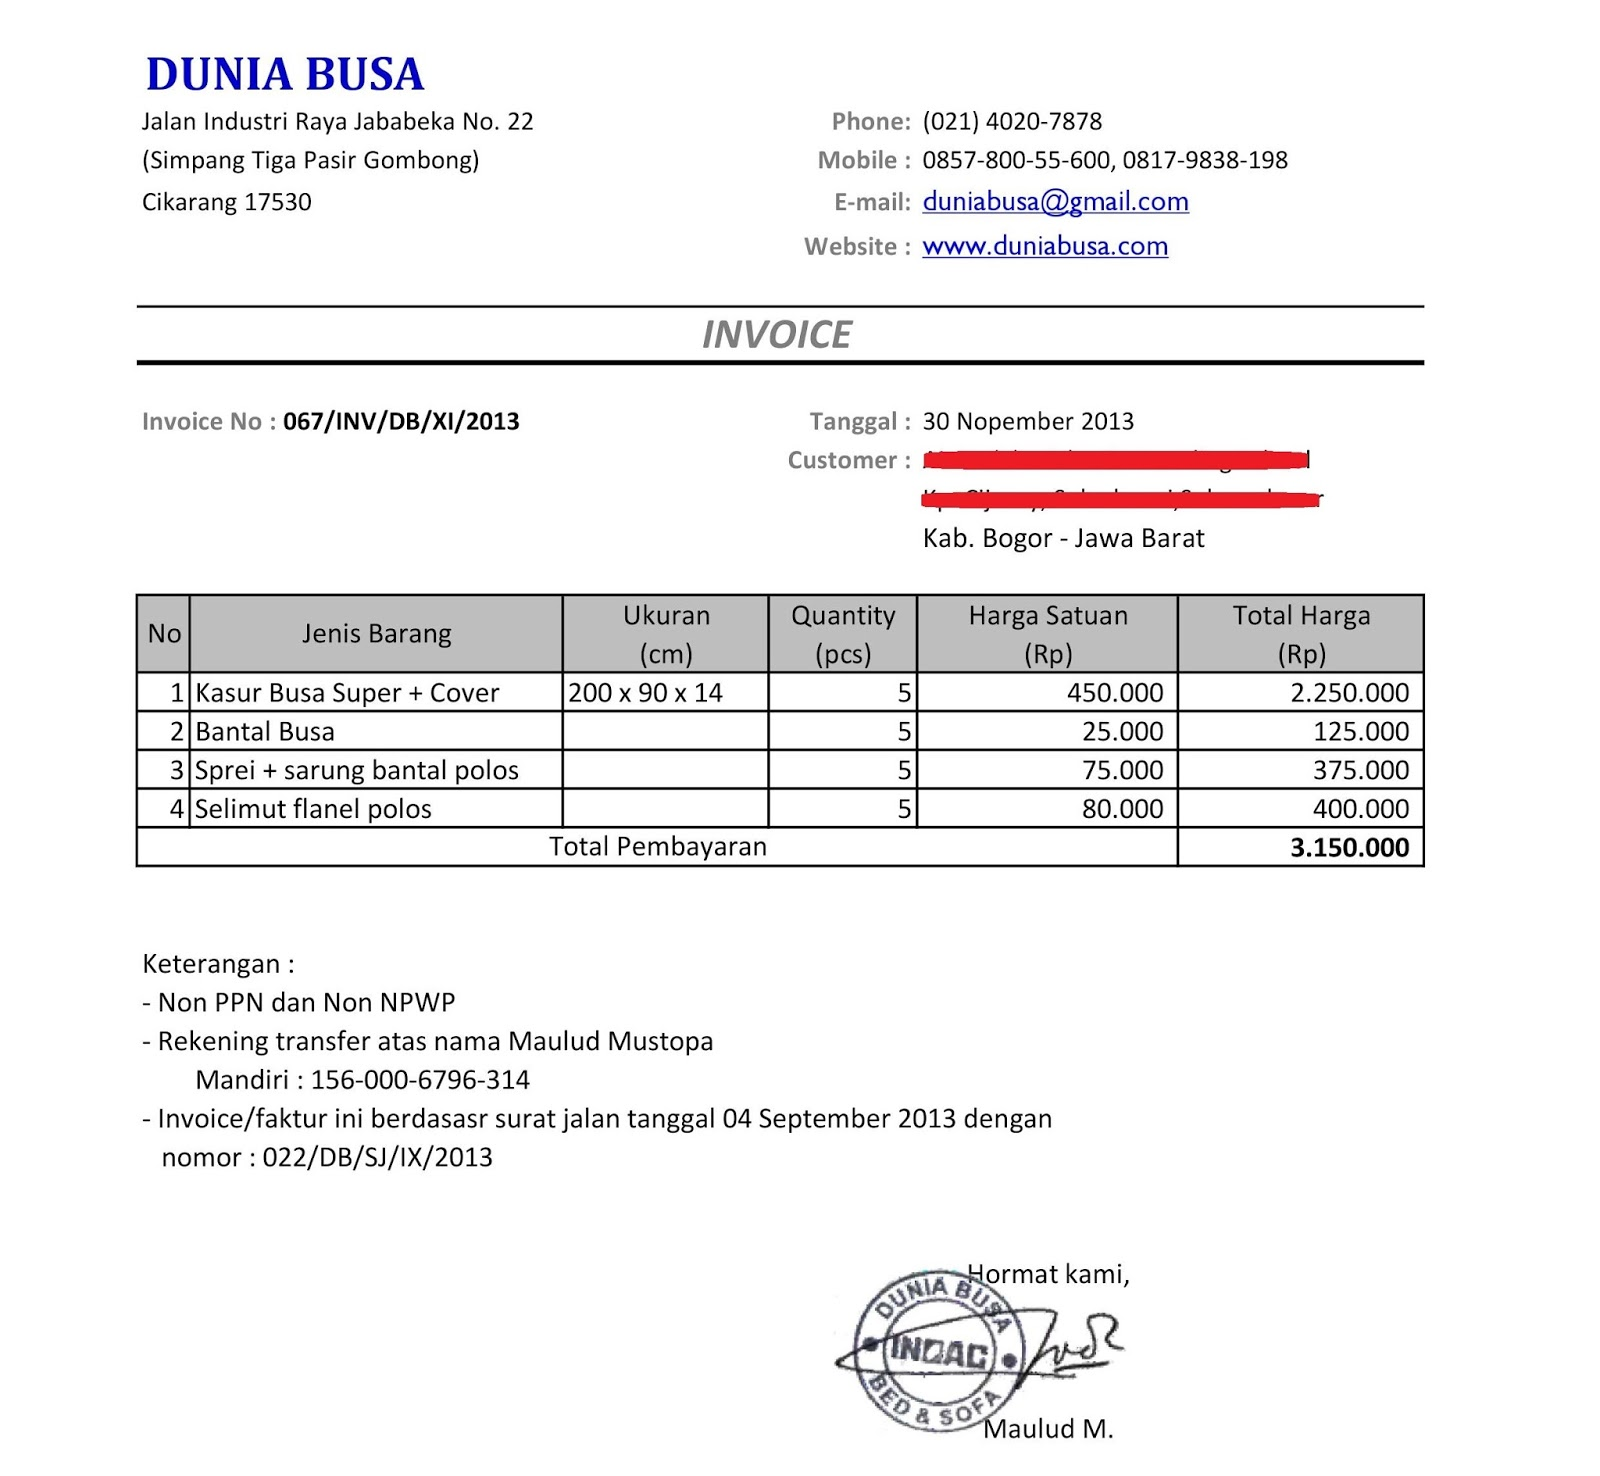 Opportunitycaus  Prepossessing Free Invoice Online  Create Invoice Online  Invoice Template  With Marvelous Contoh Format Invoice Atau Surat Tagihan  Brankas Arsip  Free Invoice Online With Lovely Microsoft Access Invoice Database Template Also Sample Invoice Email In Addition Invoice Price On Cars And Truck Invoice Prices As Well As Prepayment Invoice Additionally Cash Invoice Receipt From Sklepco With Opportunitycaus  Marvelous Free Invoice Online  Create Invoice Online  Invoice Template  With Lovely Contoh Format Invoice Atau Surat Tagihan  Brankas Arsip  Free Invoice Online And Prepossessing Microsoft Access Invoice Database Template Also Sample Invoice Email In Addition Invoice Price On Cars From Sklepco